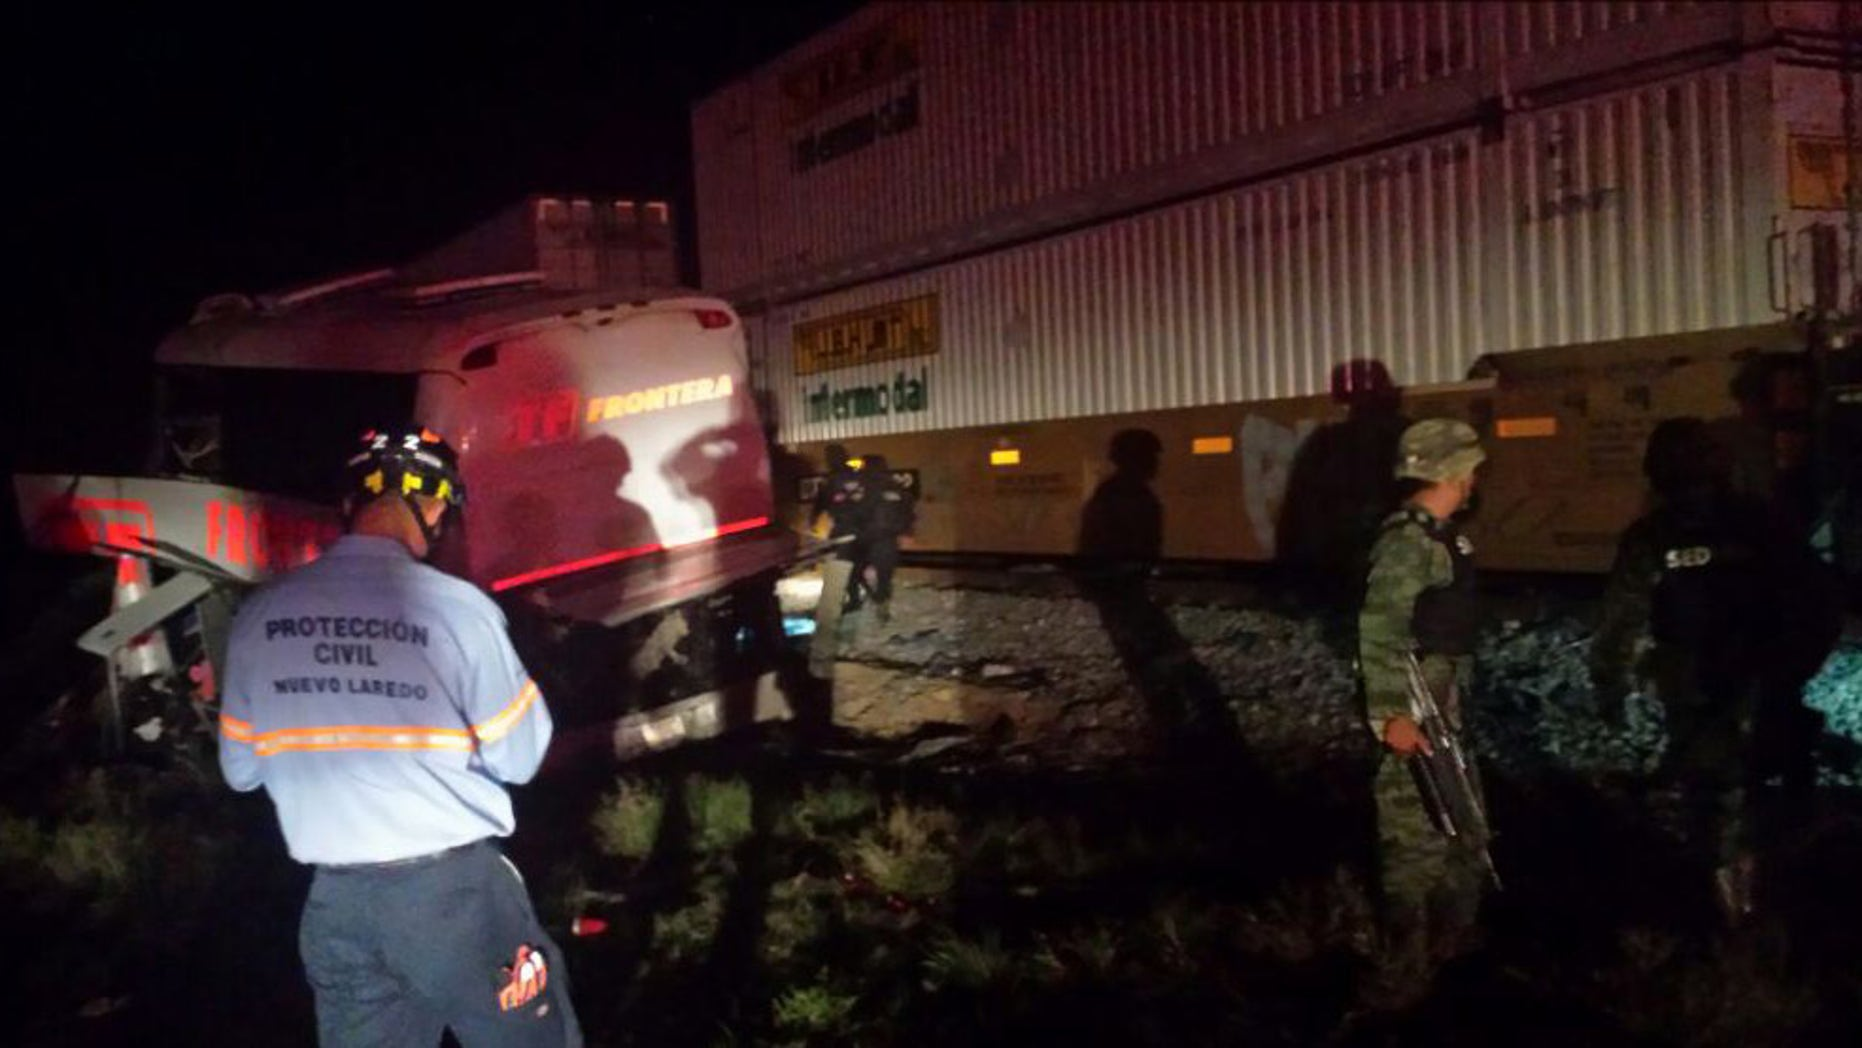 Army soldiers and civil protection workers on the scene of an accident where a passenger bus and a freight train collided at a grade crossing, in Anahuac, Mexico, Friday, Feb. 13, 2015. According to Mexican sources at least 16 people are dead and dozens injured. (AP Photo/El Mañana de Nuevo Laredo)